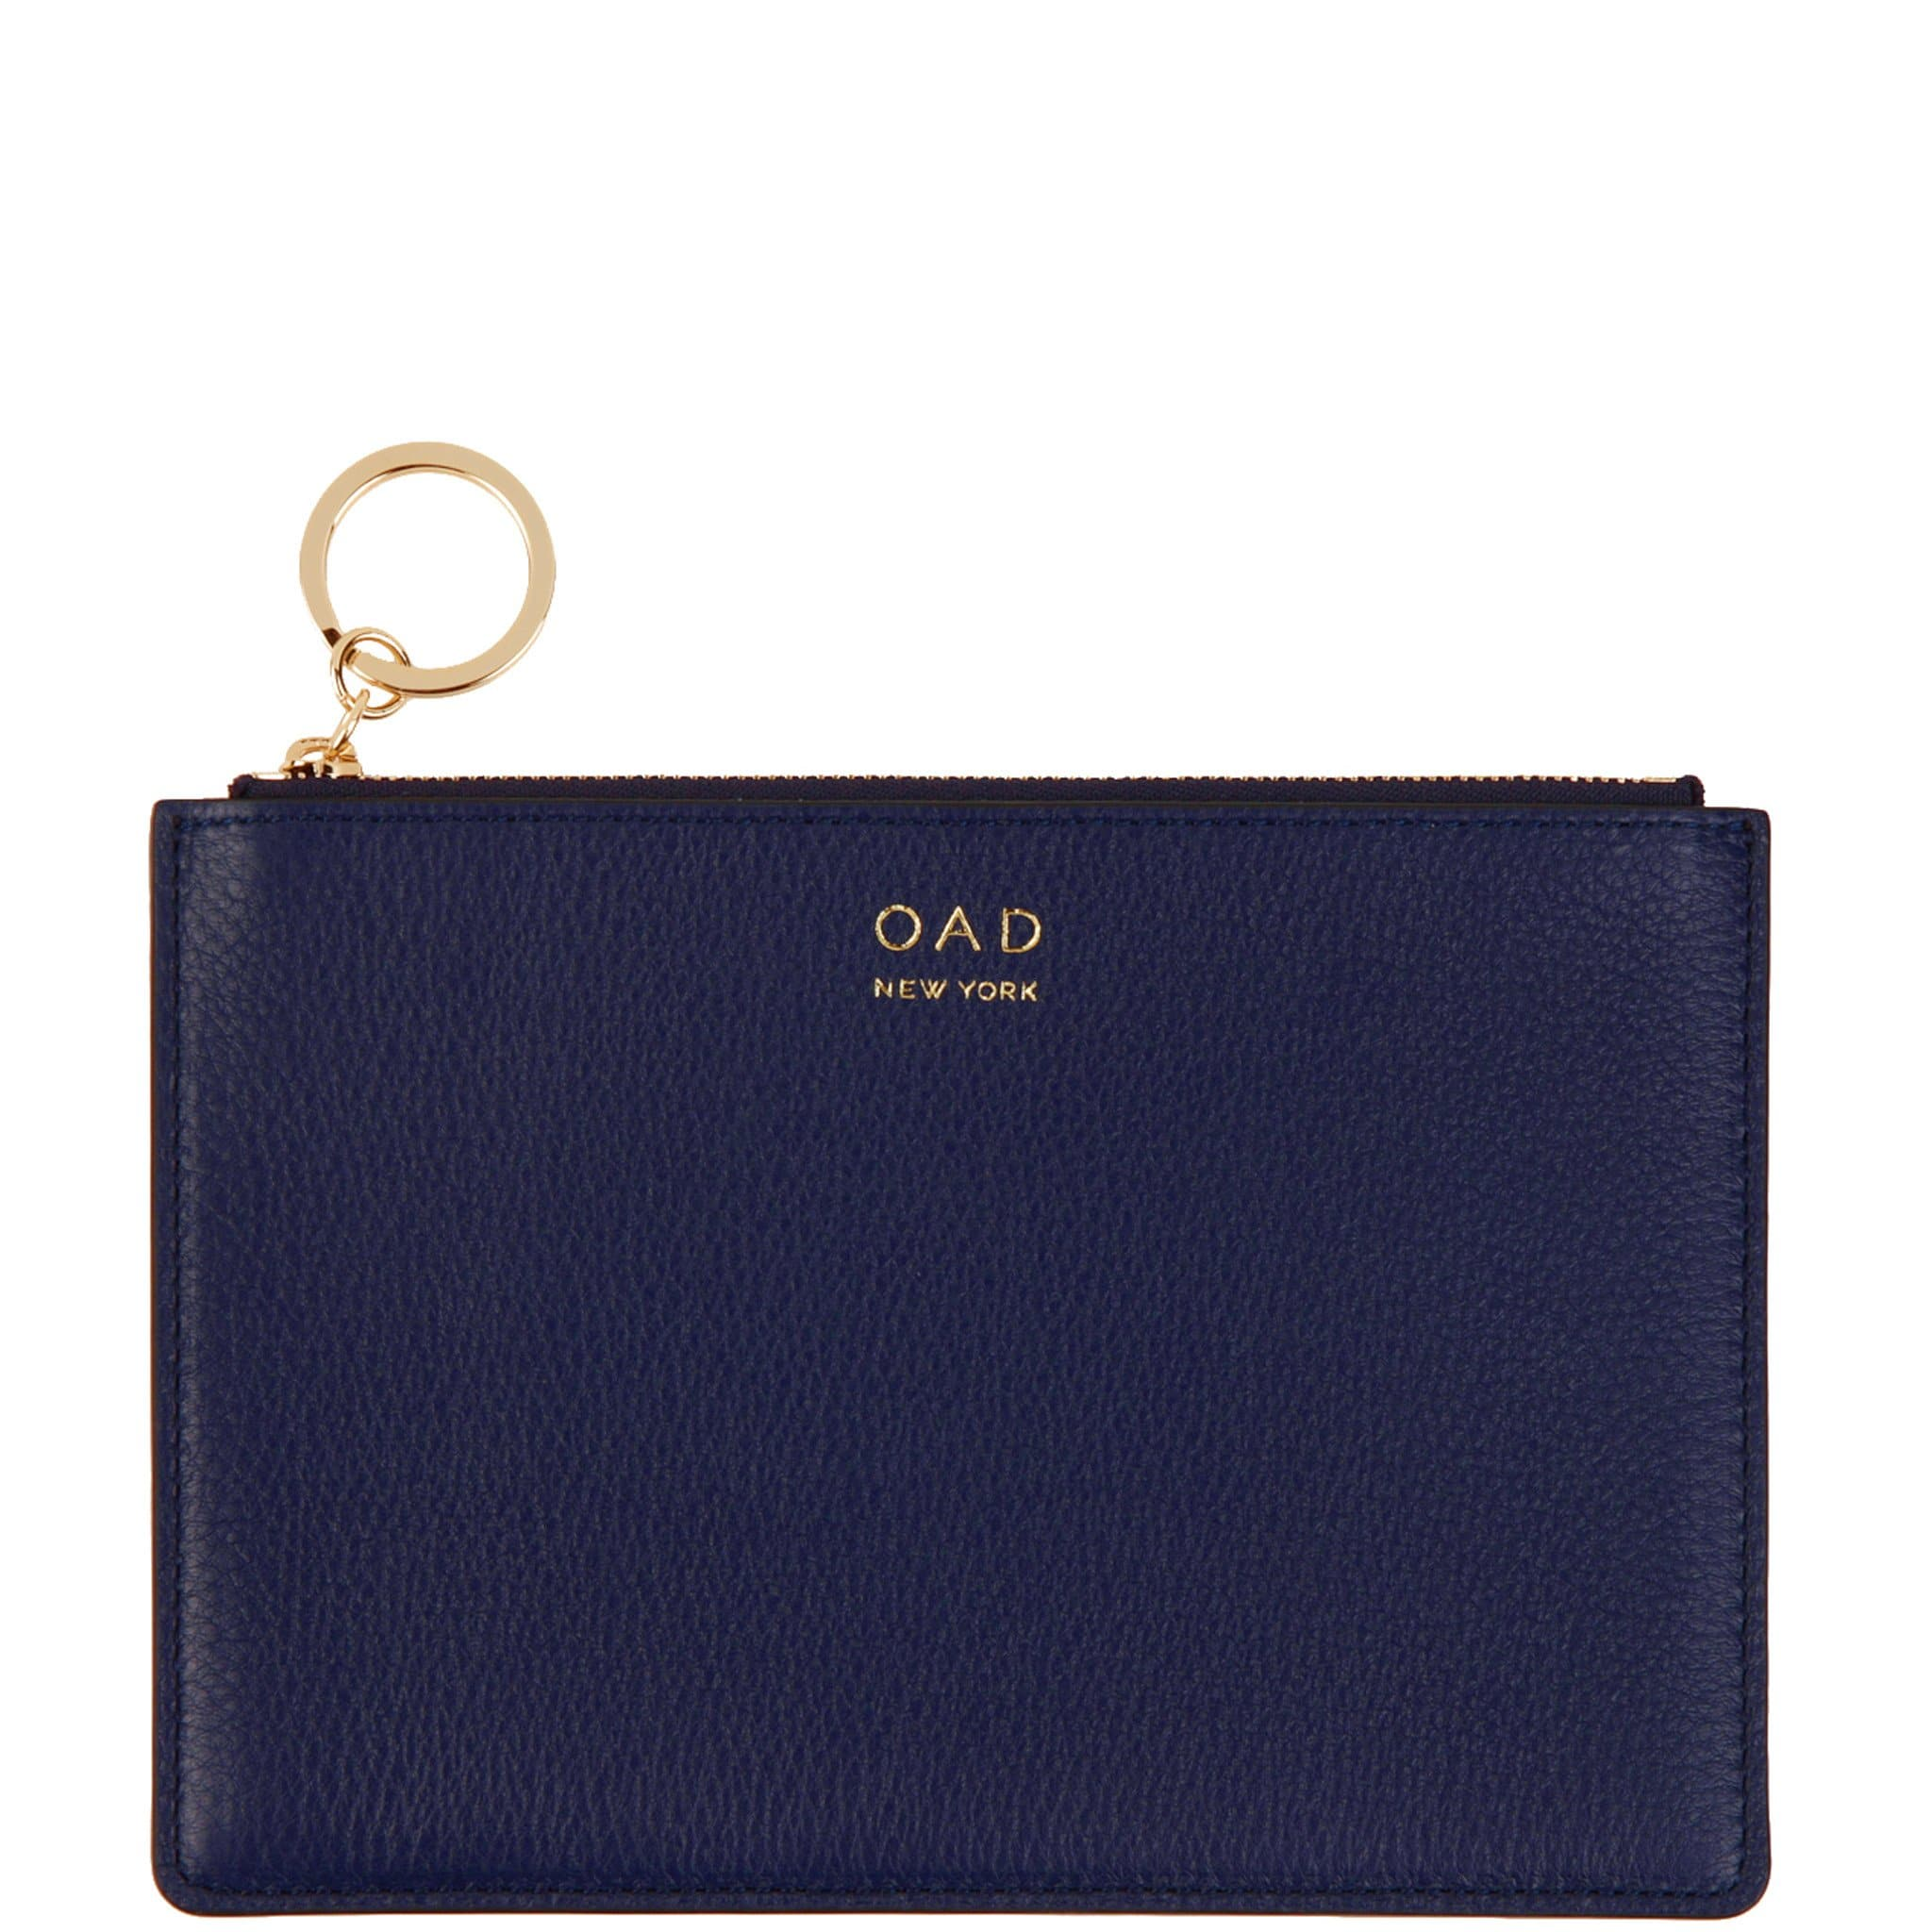 Medium Slim - Navy Blue - OAD NEW YORK - 1